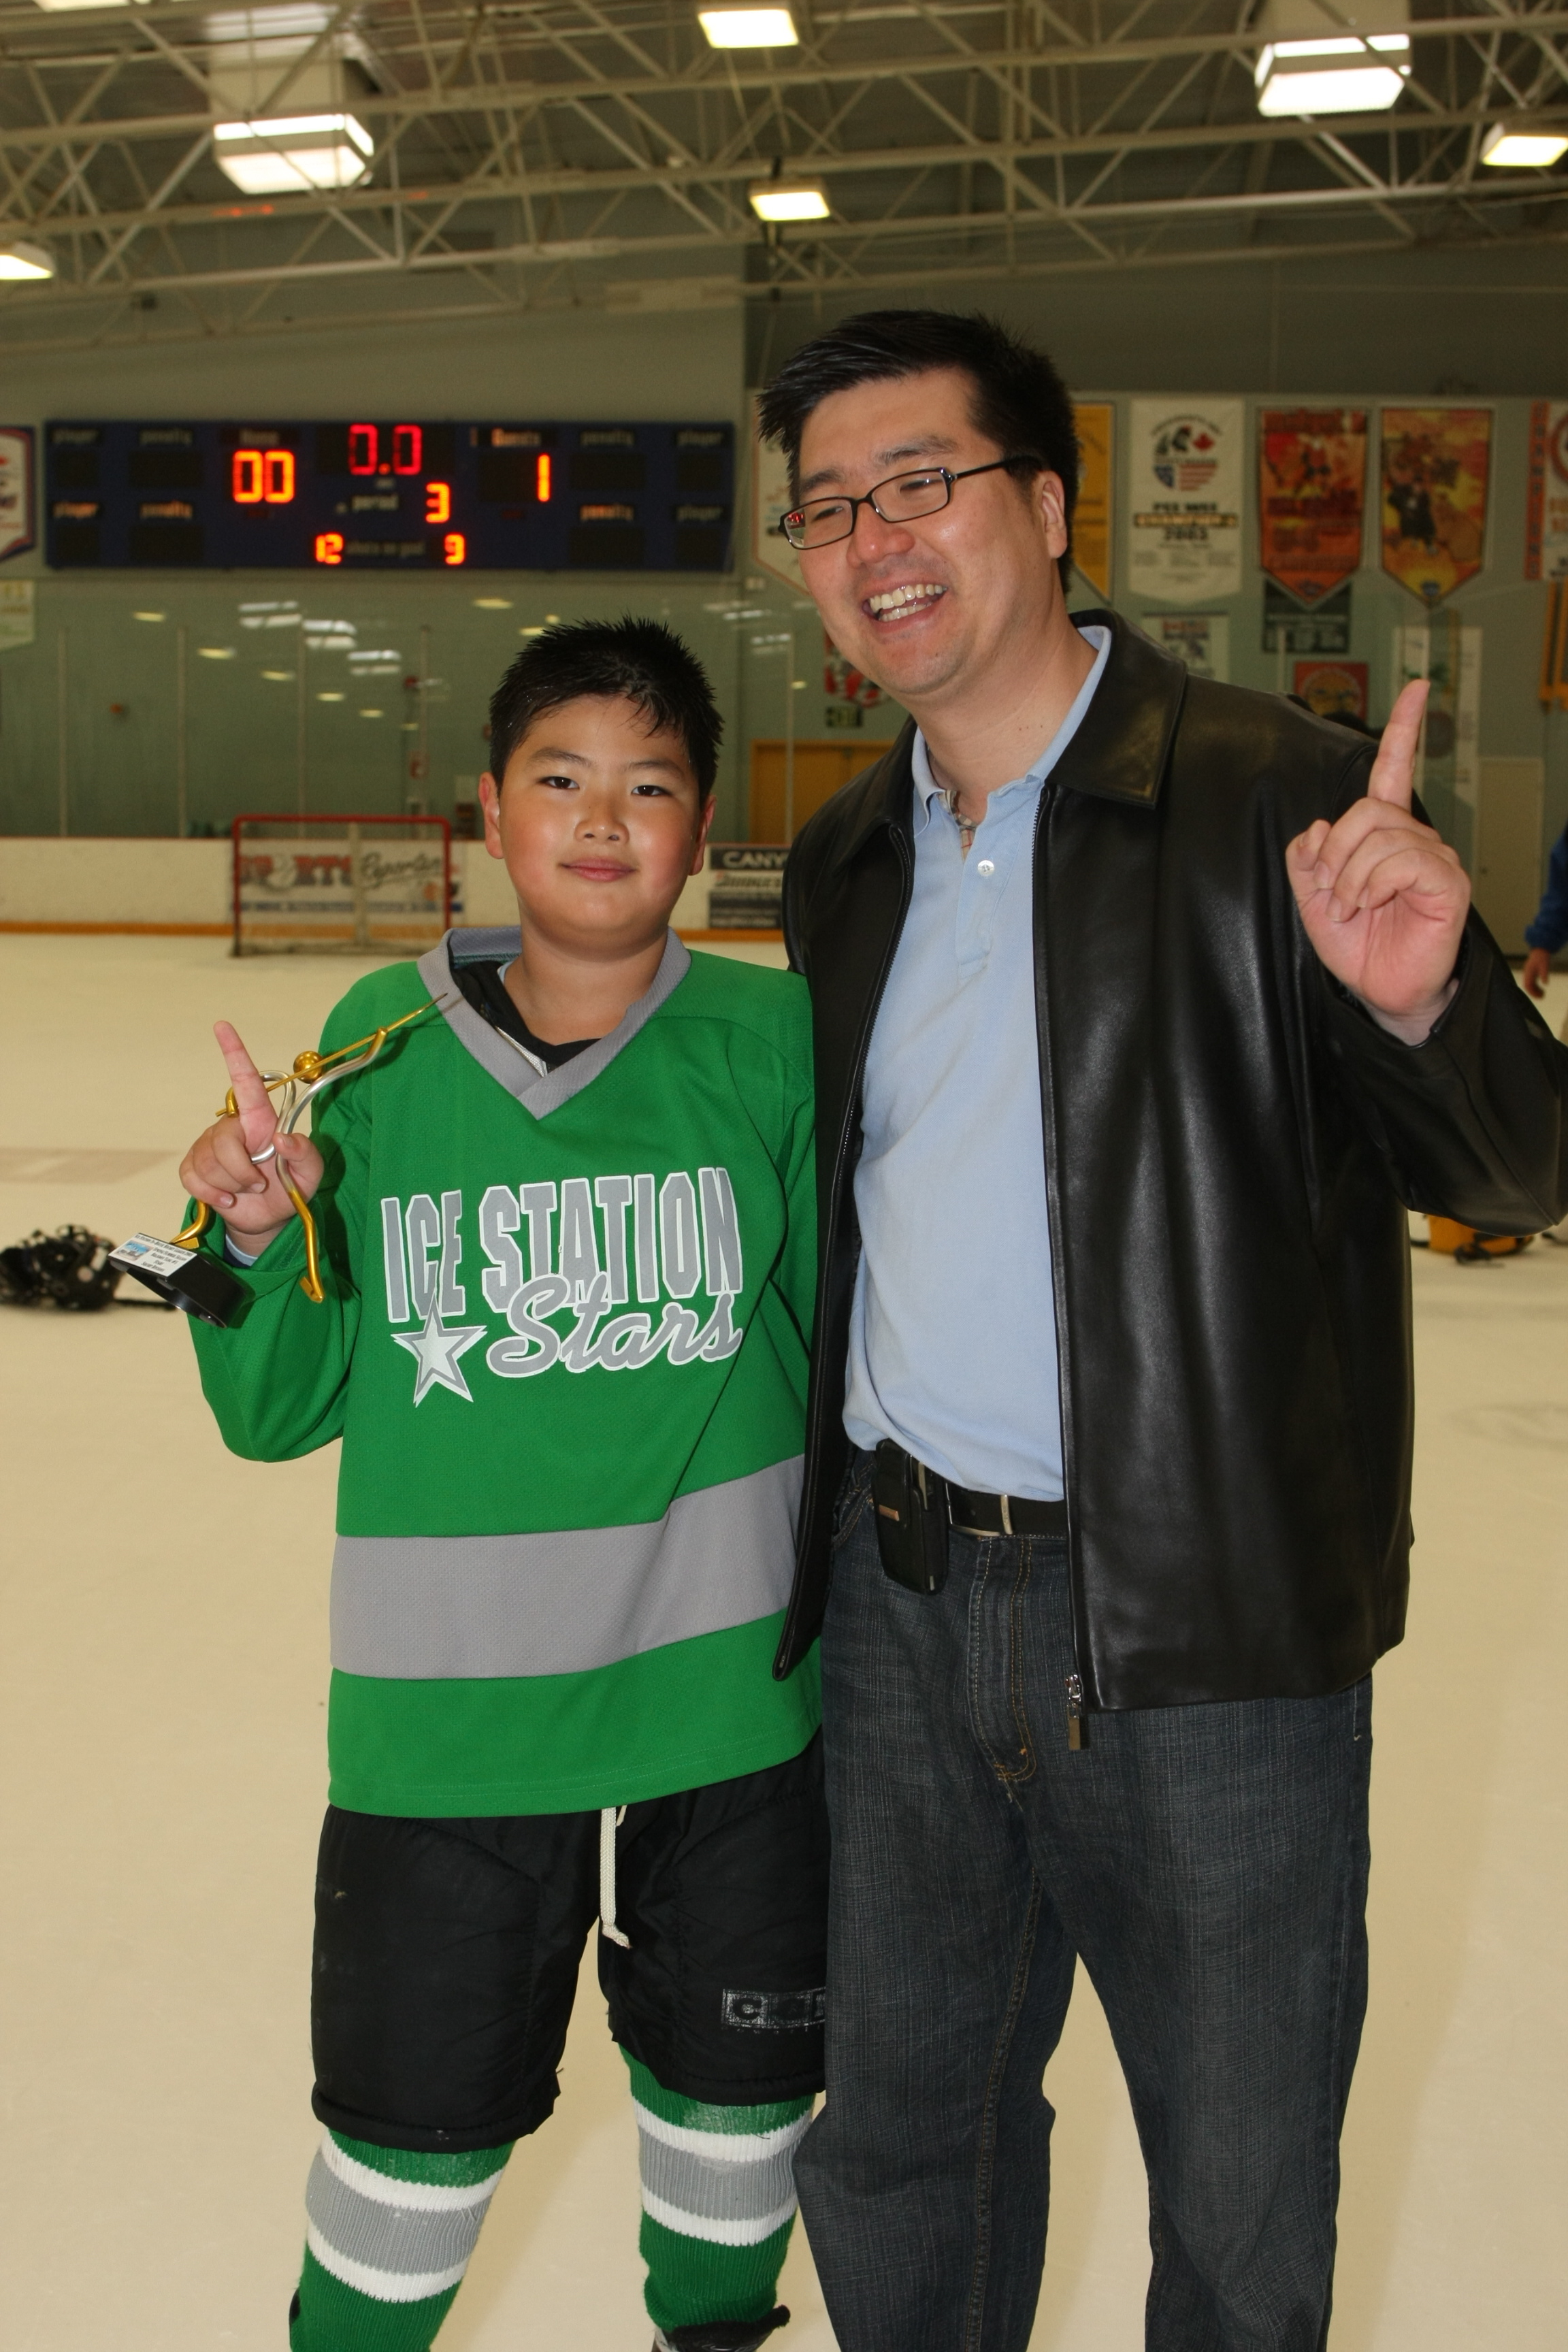 Dr. Yang (coach of the Ice Station Stars) and his son celebrate a recent win.